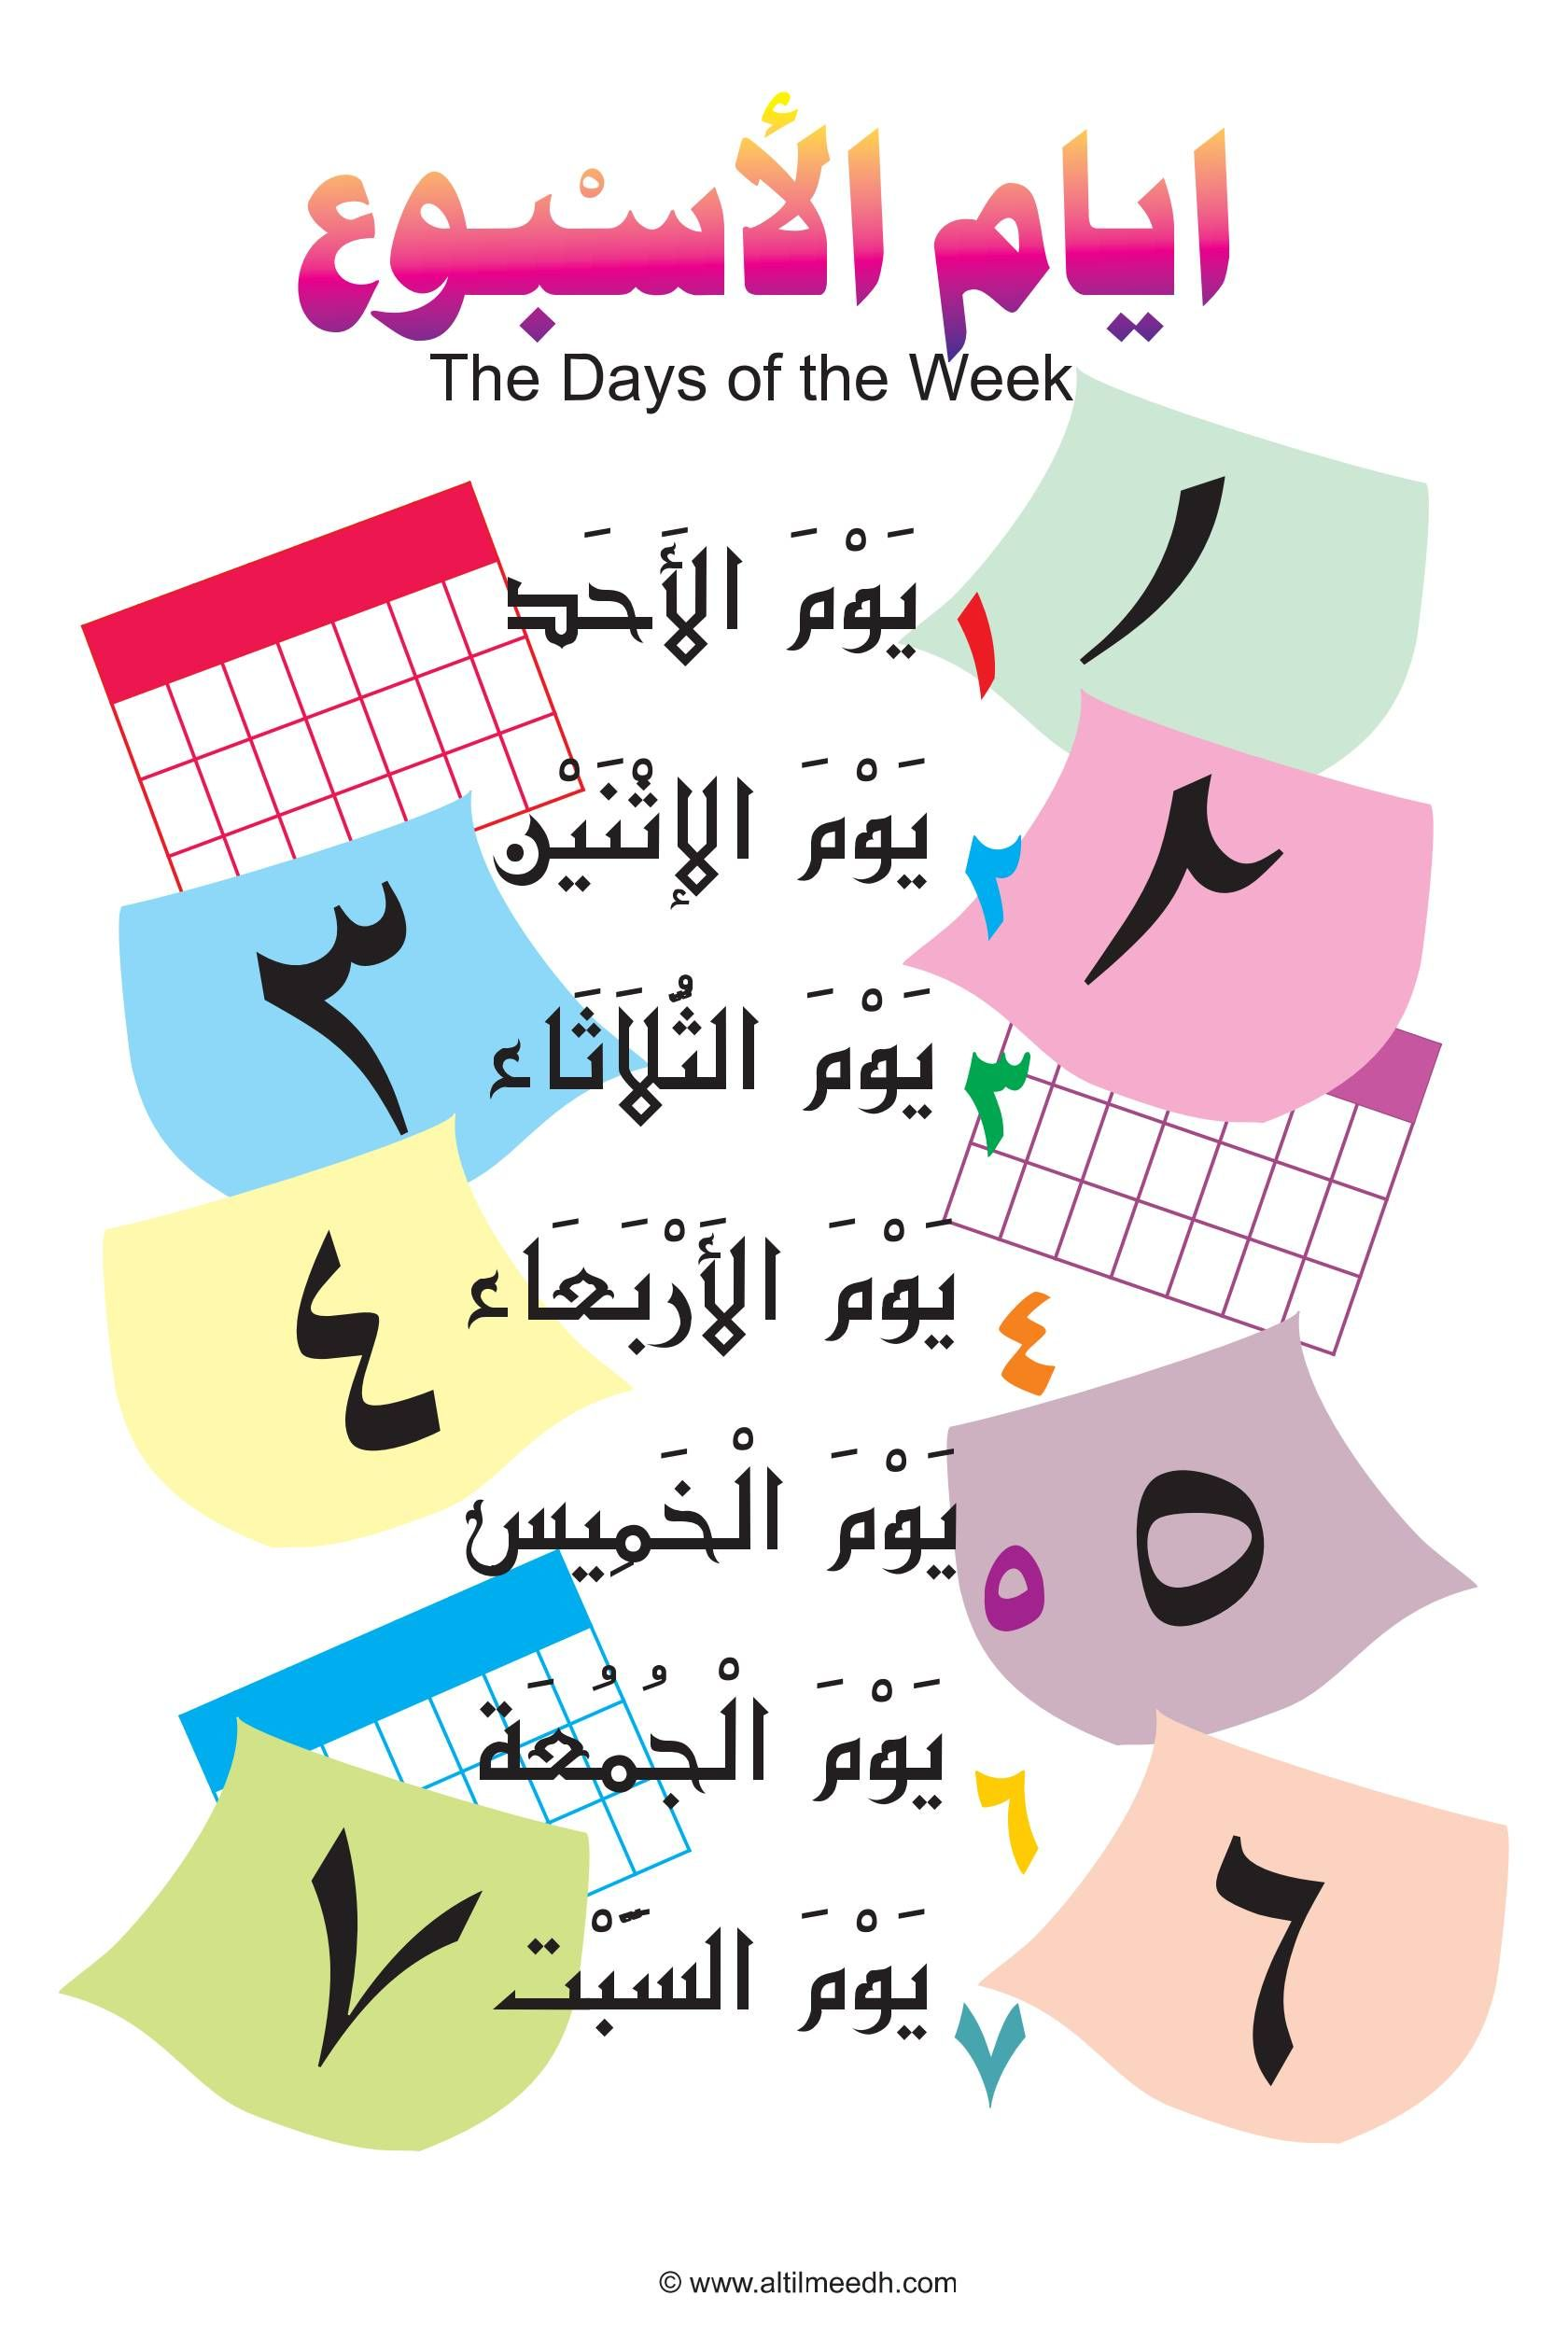 This Poster Features The Days Of The Week In Arabic With